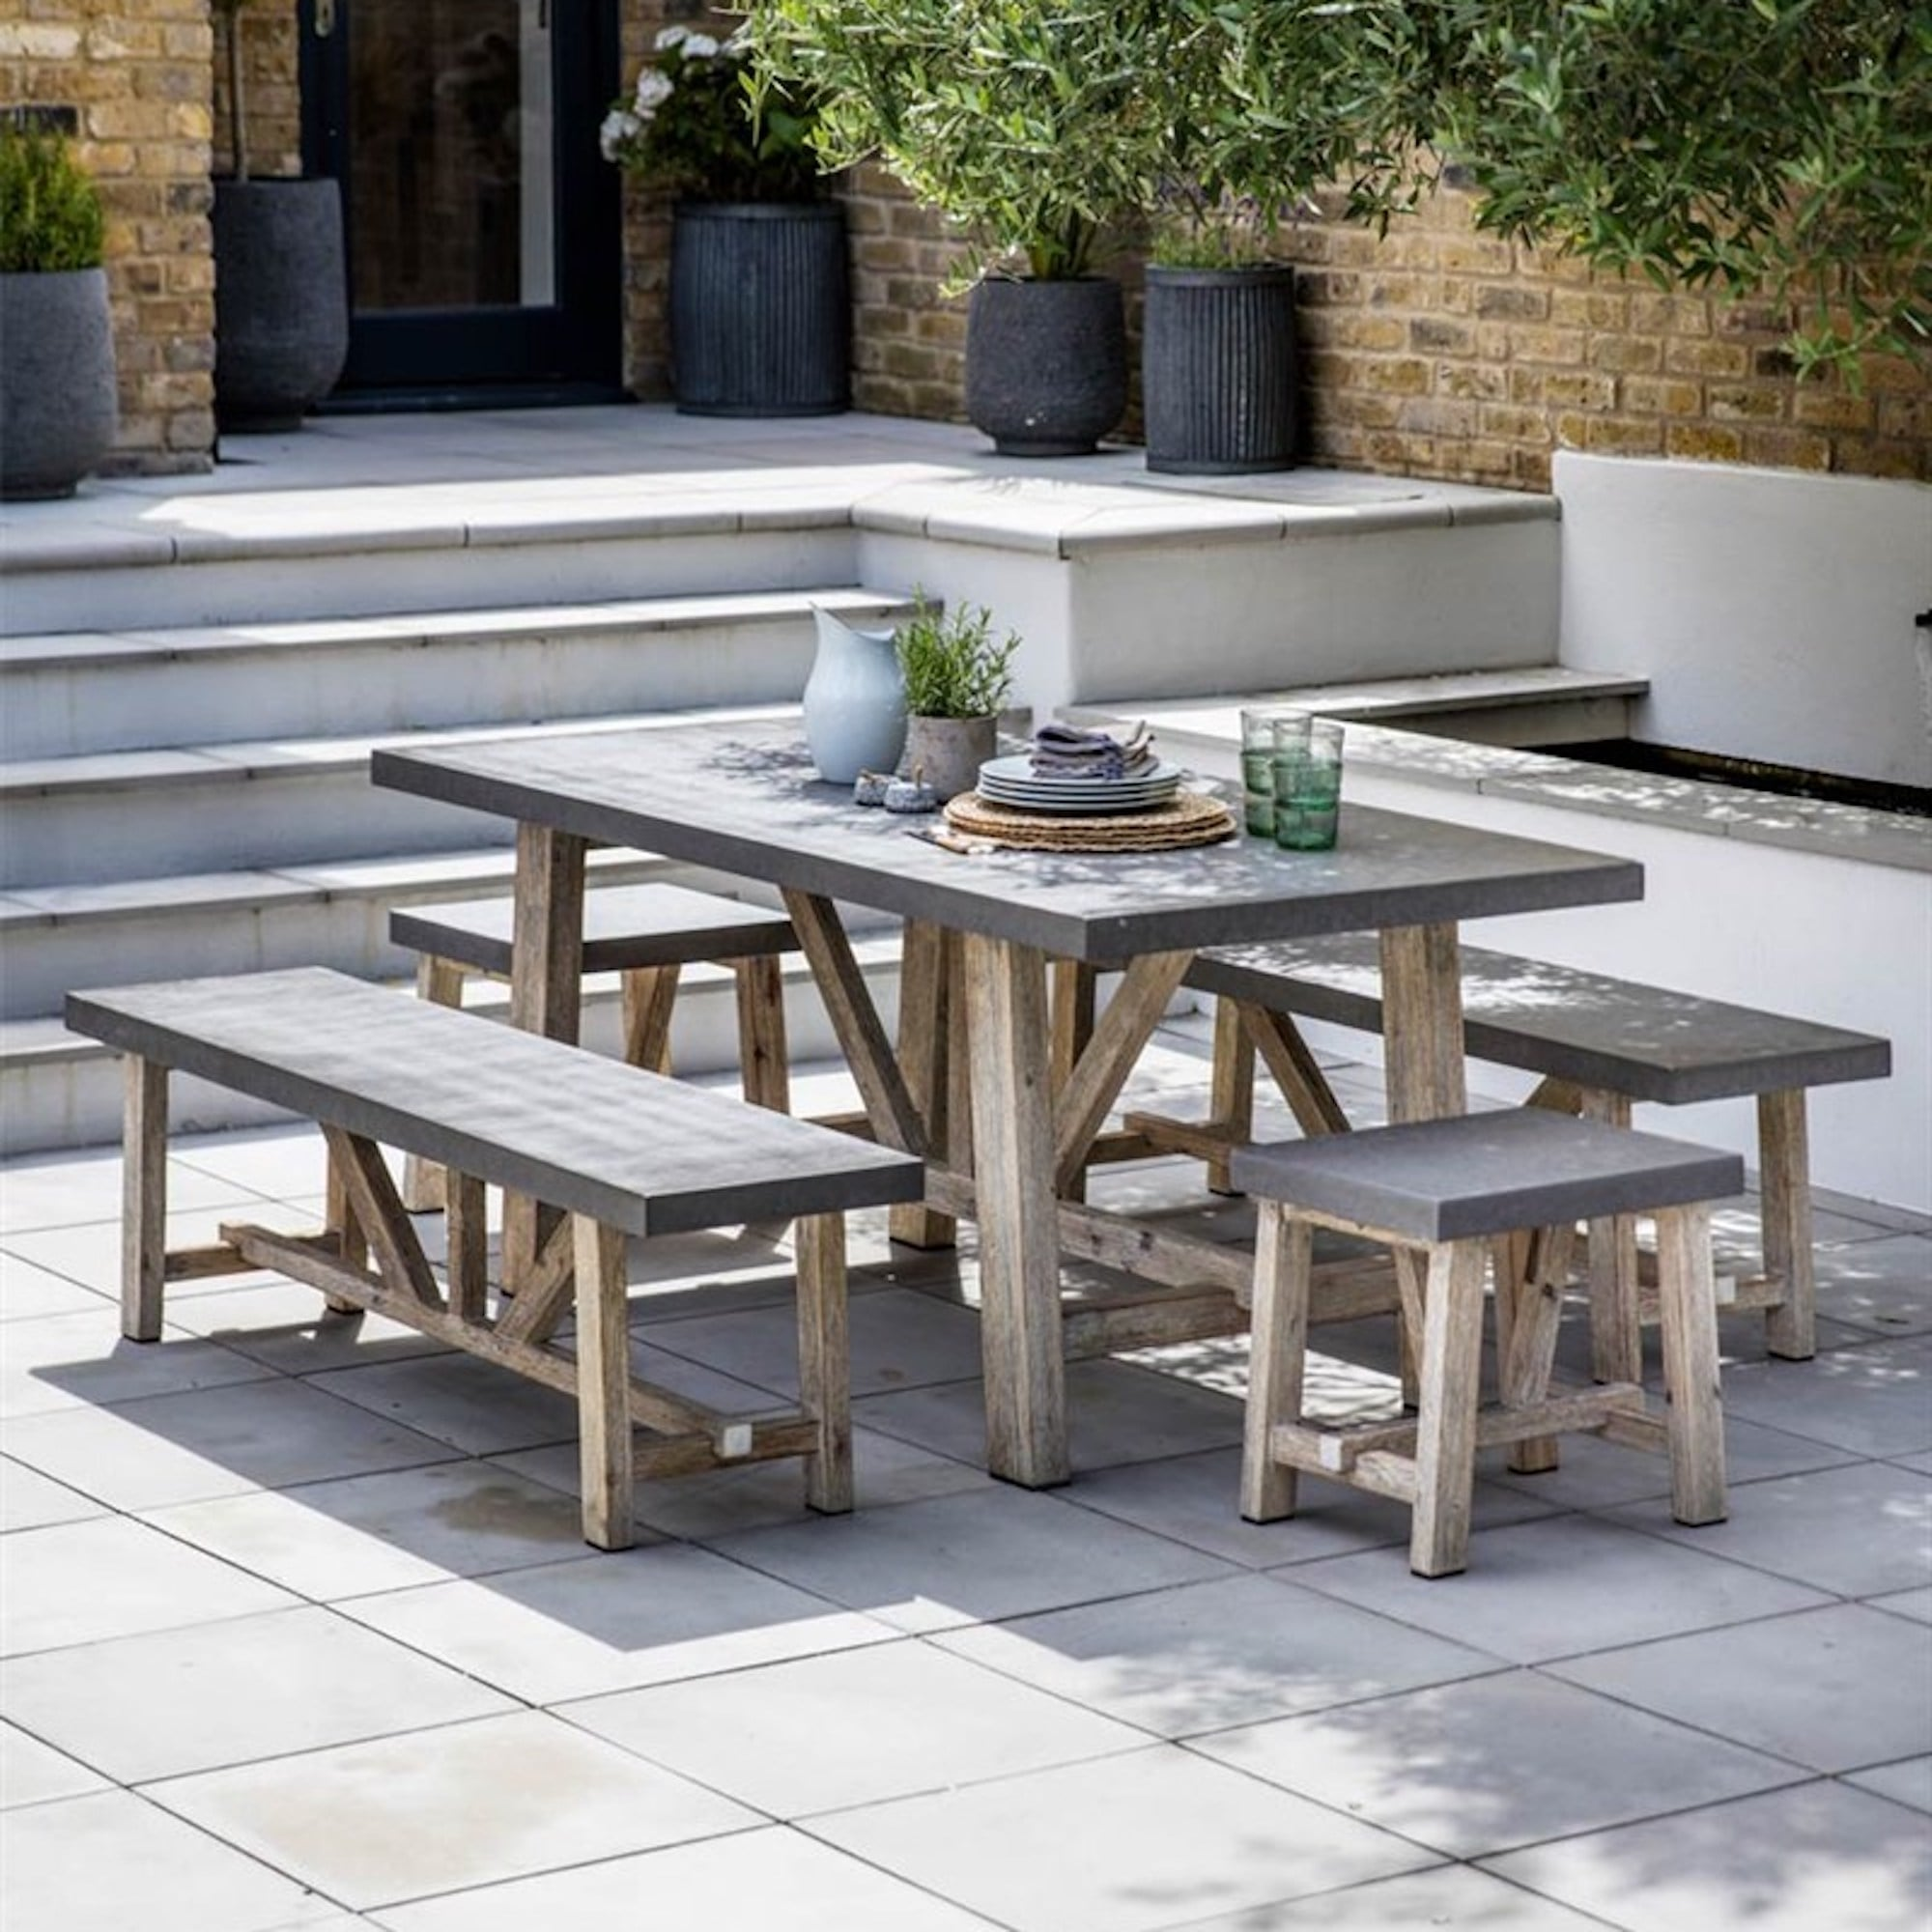 Garden Table And Bench Set Uk 28 Images Henley Teak Garden Table And Bench Set Garden Table